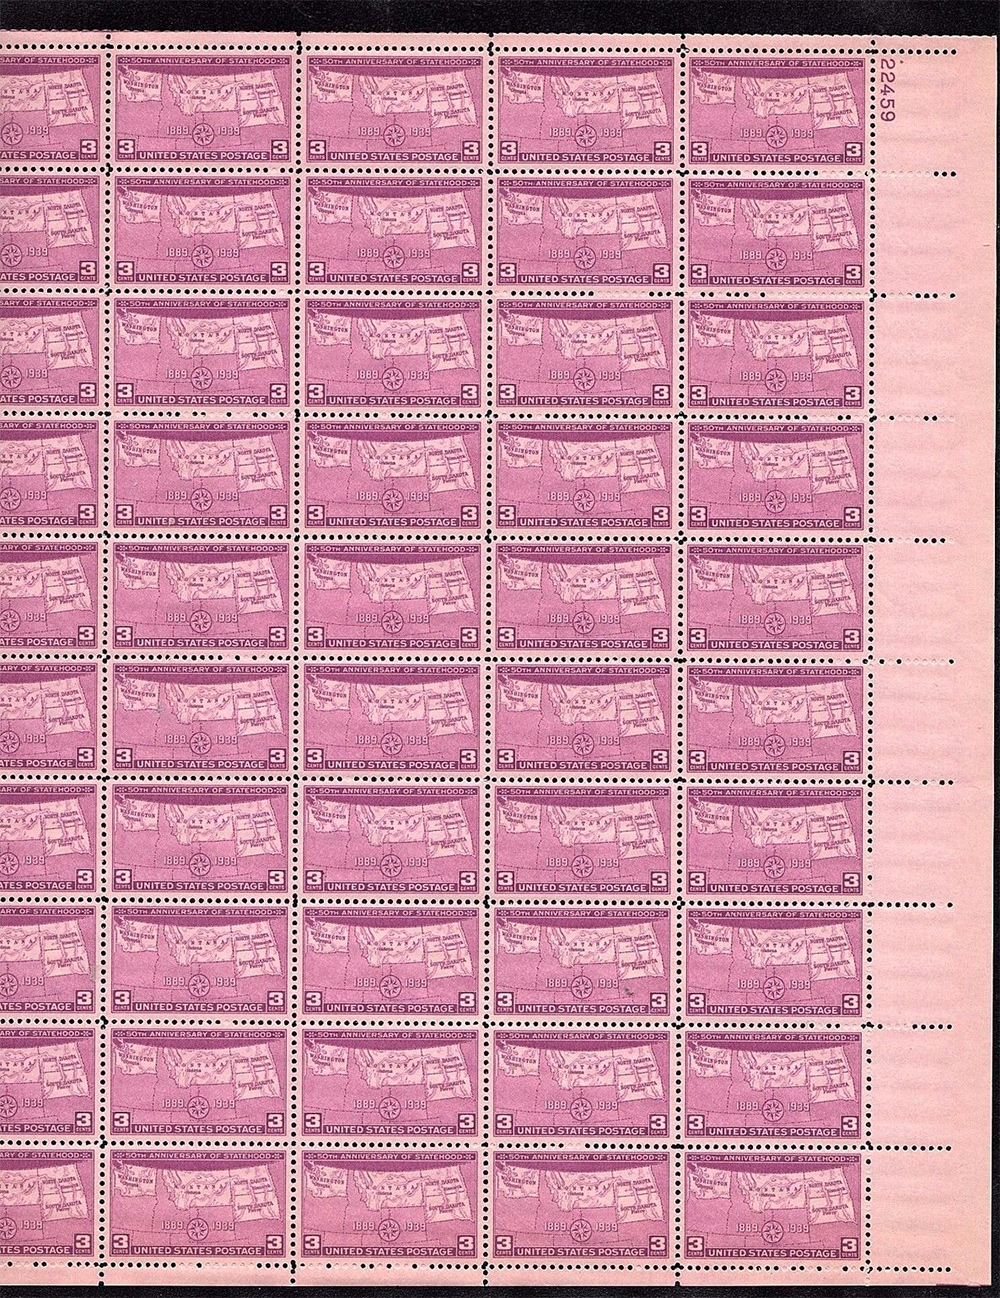 US stamp 858 sheet